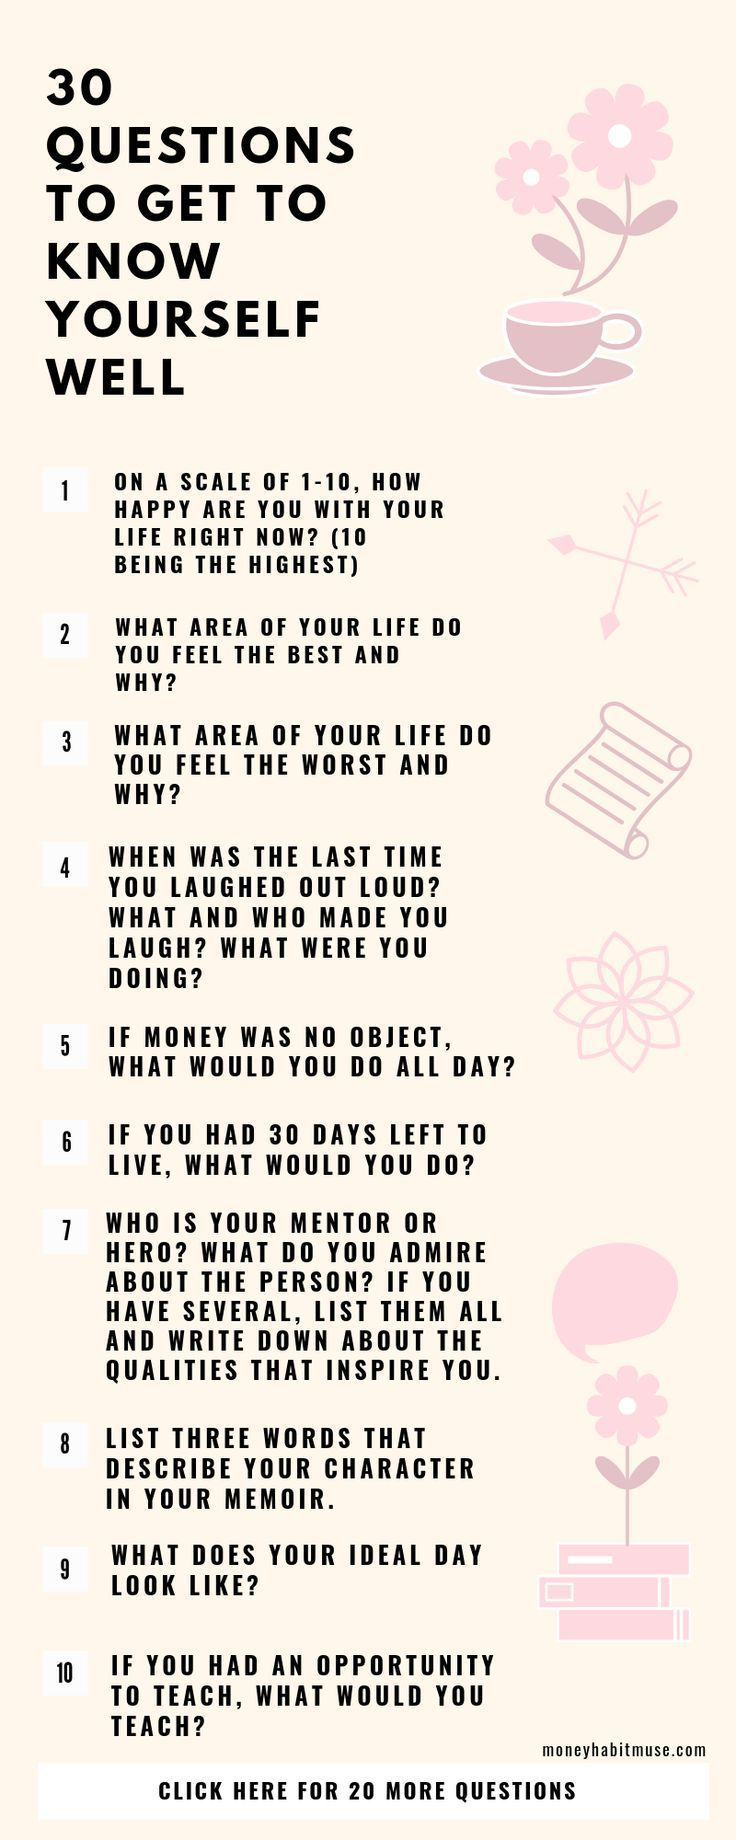 30 Questions To Get To Know Yourself Well is part of This or that questions, Getting to know you, How are you feeling, Self discovery, Self development, Motivational blogs - Work through 30 questions to get to know yourself well  They'll guide you through the life path you're meant to go  It's essential to personal development